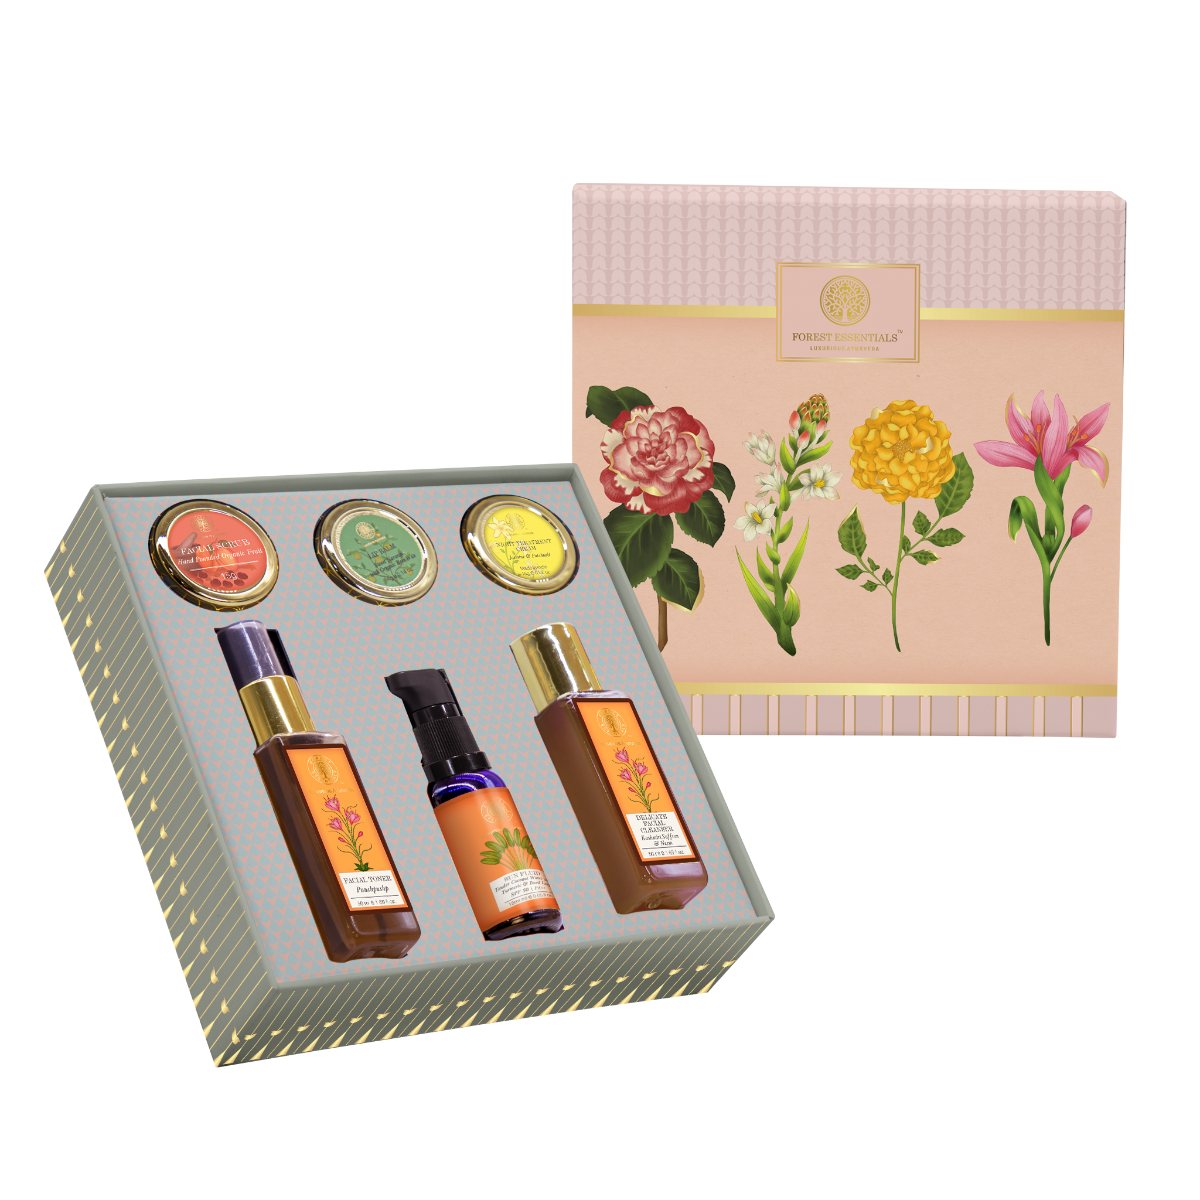 Facial Care Selection kit, Source: Forest Essentials